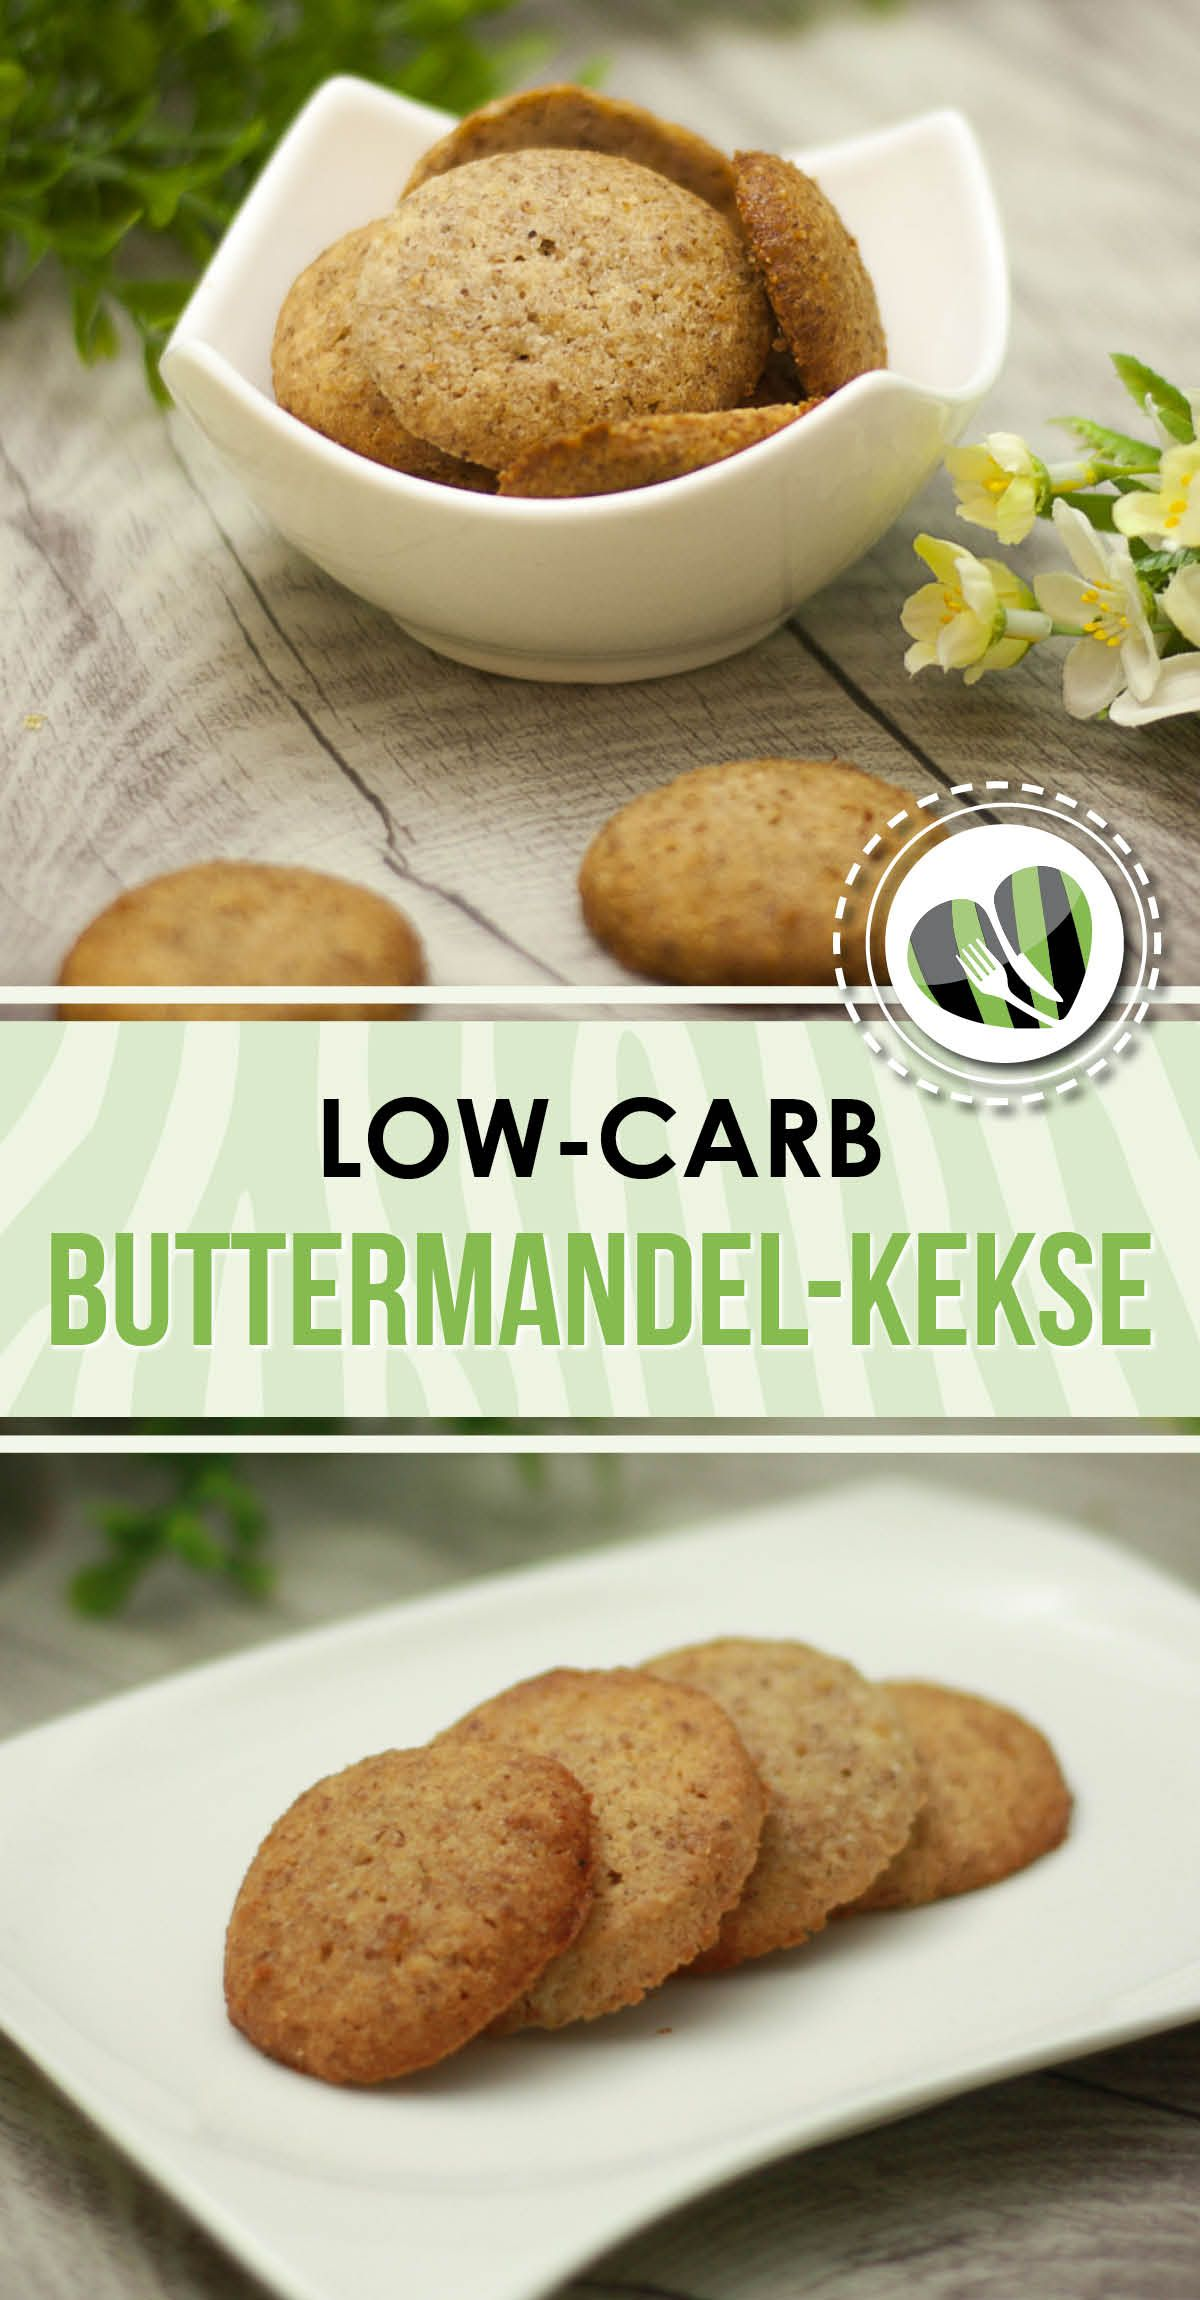 Low Carb Kuchen Ohne Ei Low Carb Buttermandel Kekse Diätrezepte Low Carb Keto